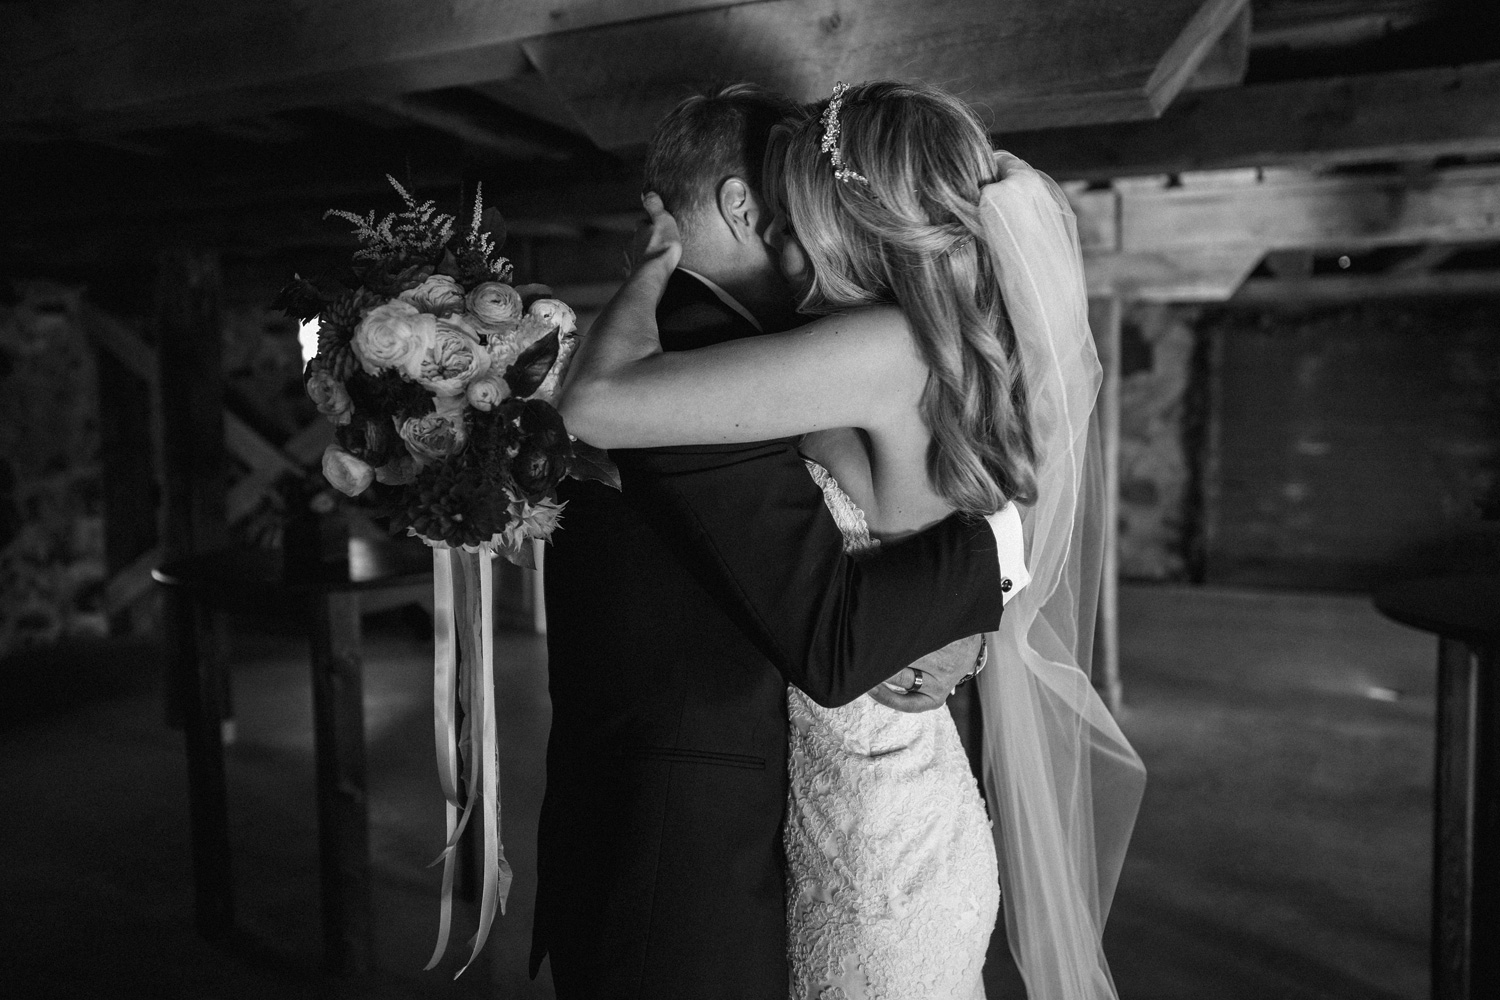 Emotional Hug between bride and groom